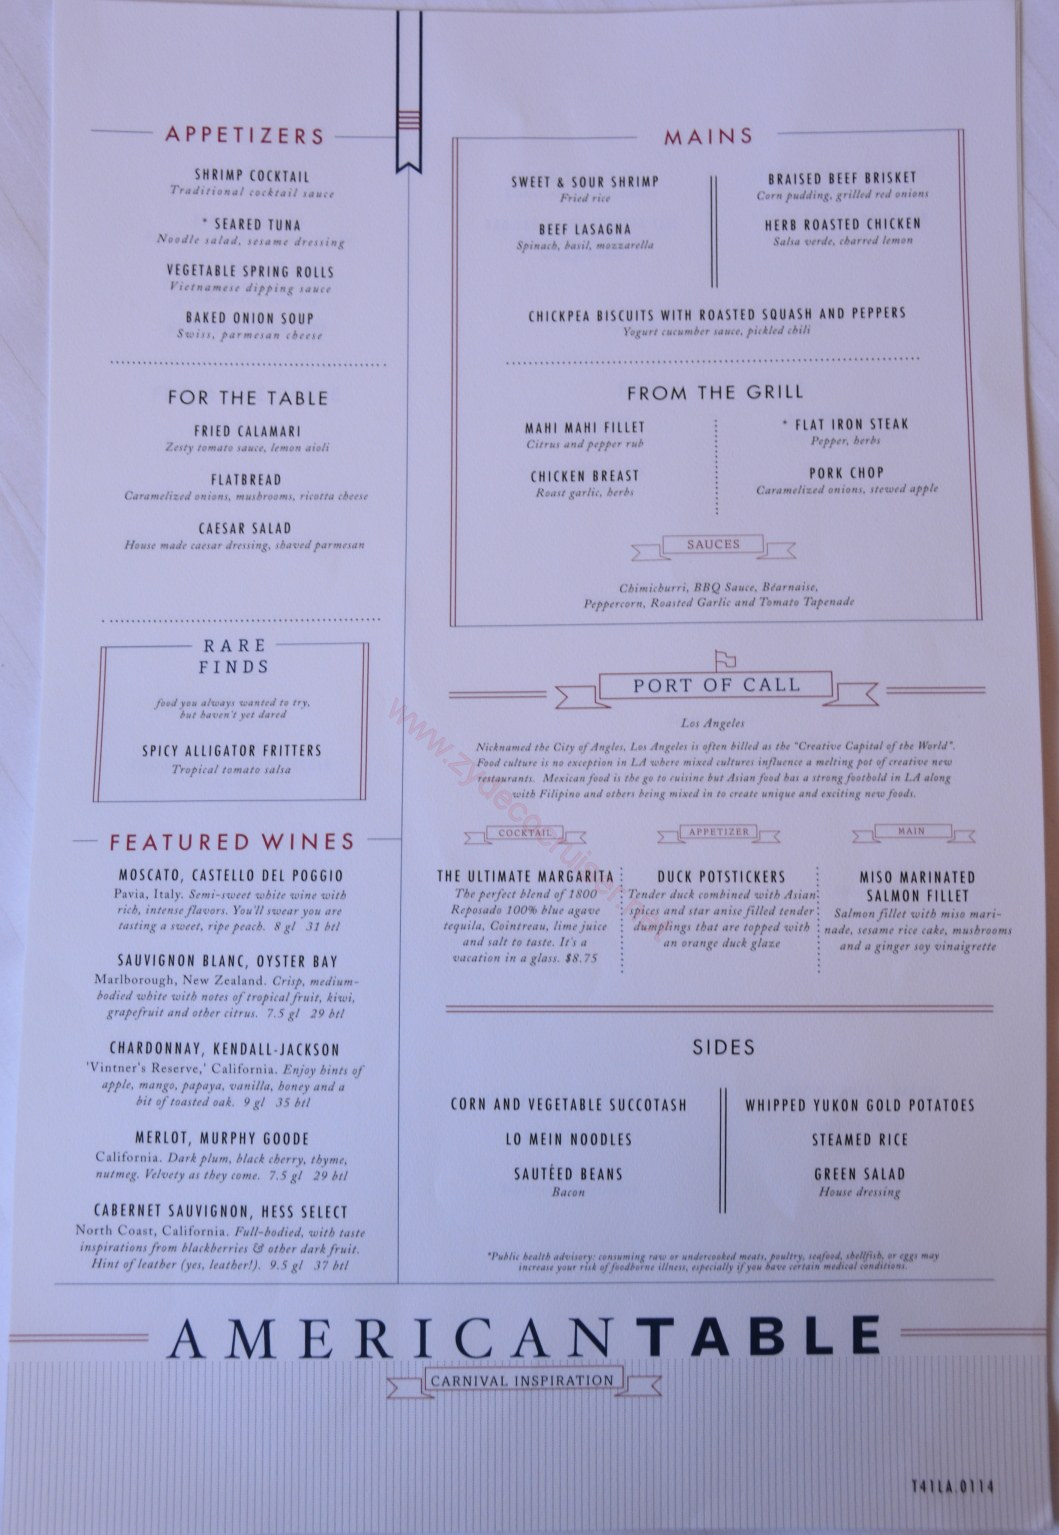 Carnival inspiration 3 day american table menus day 1 for Table table restaurant menu